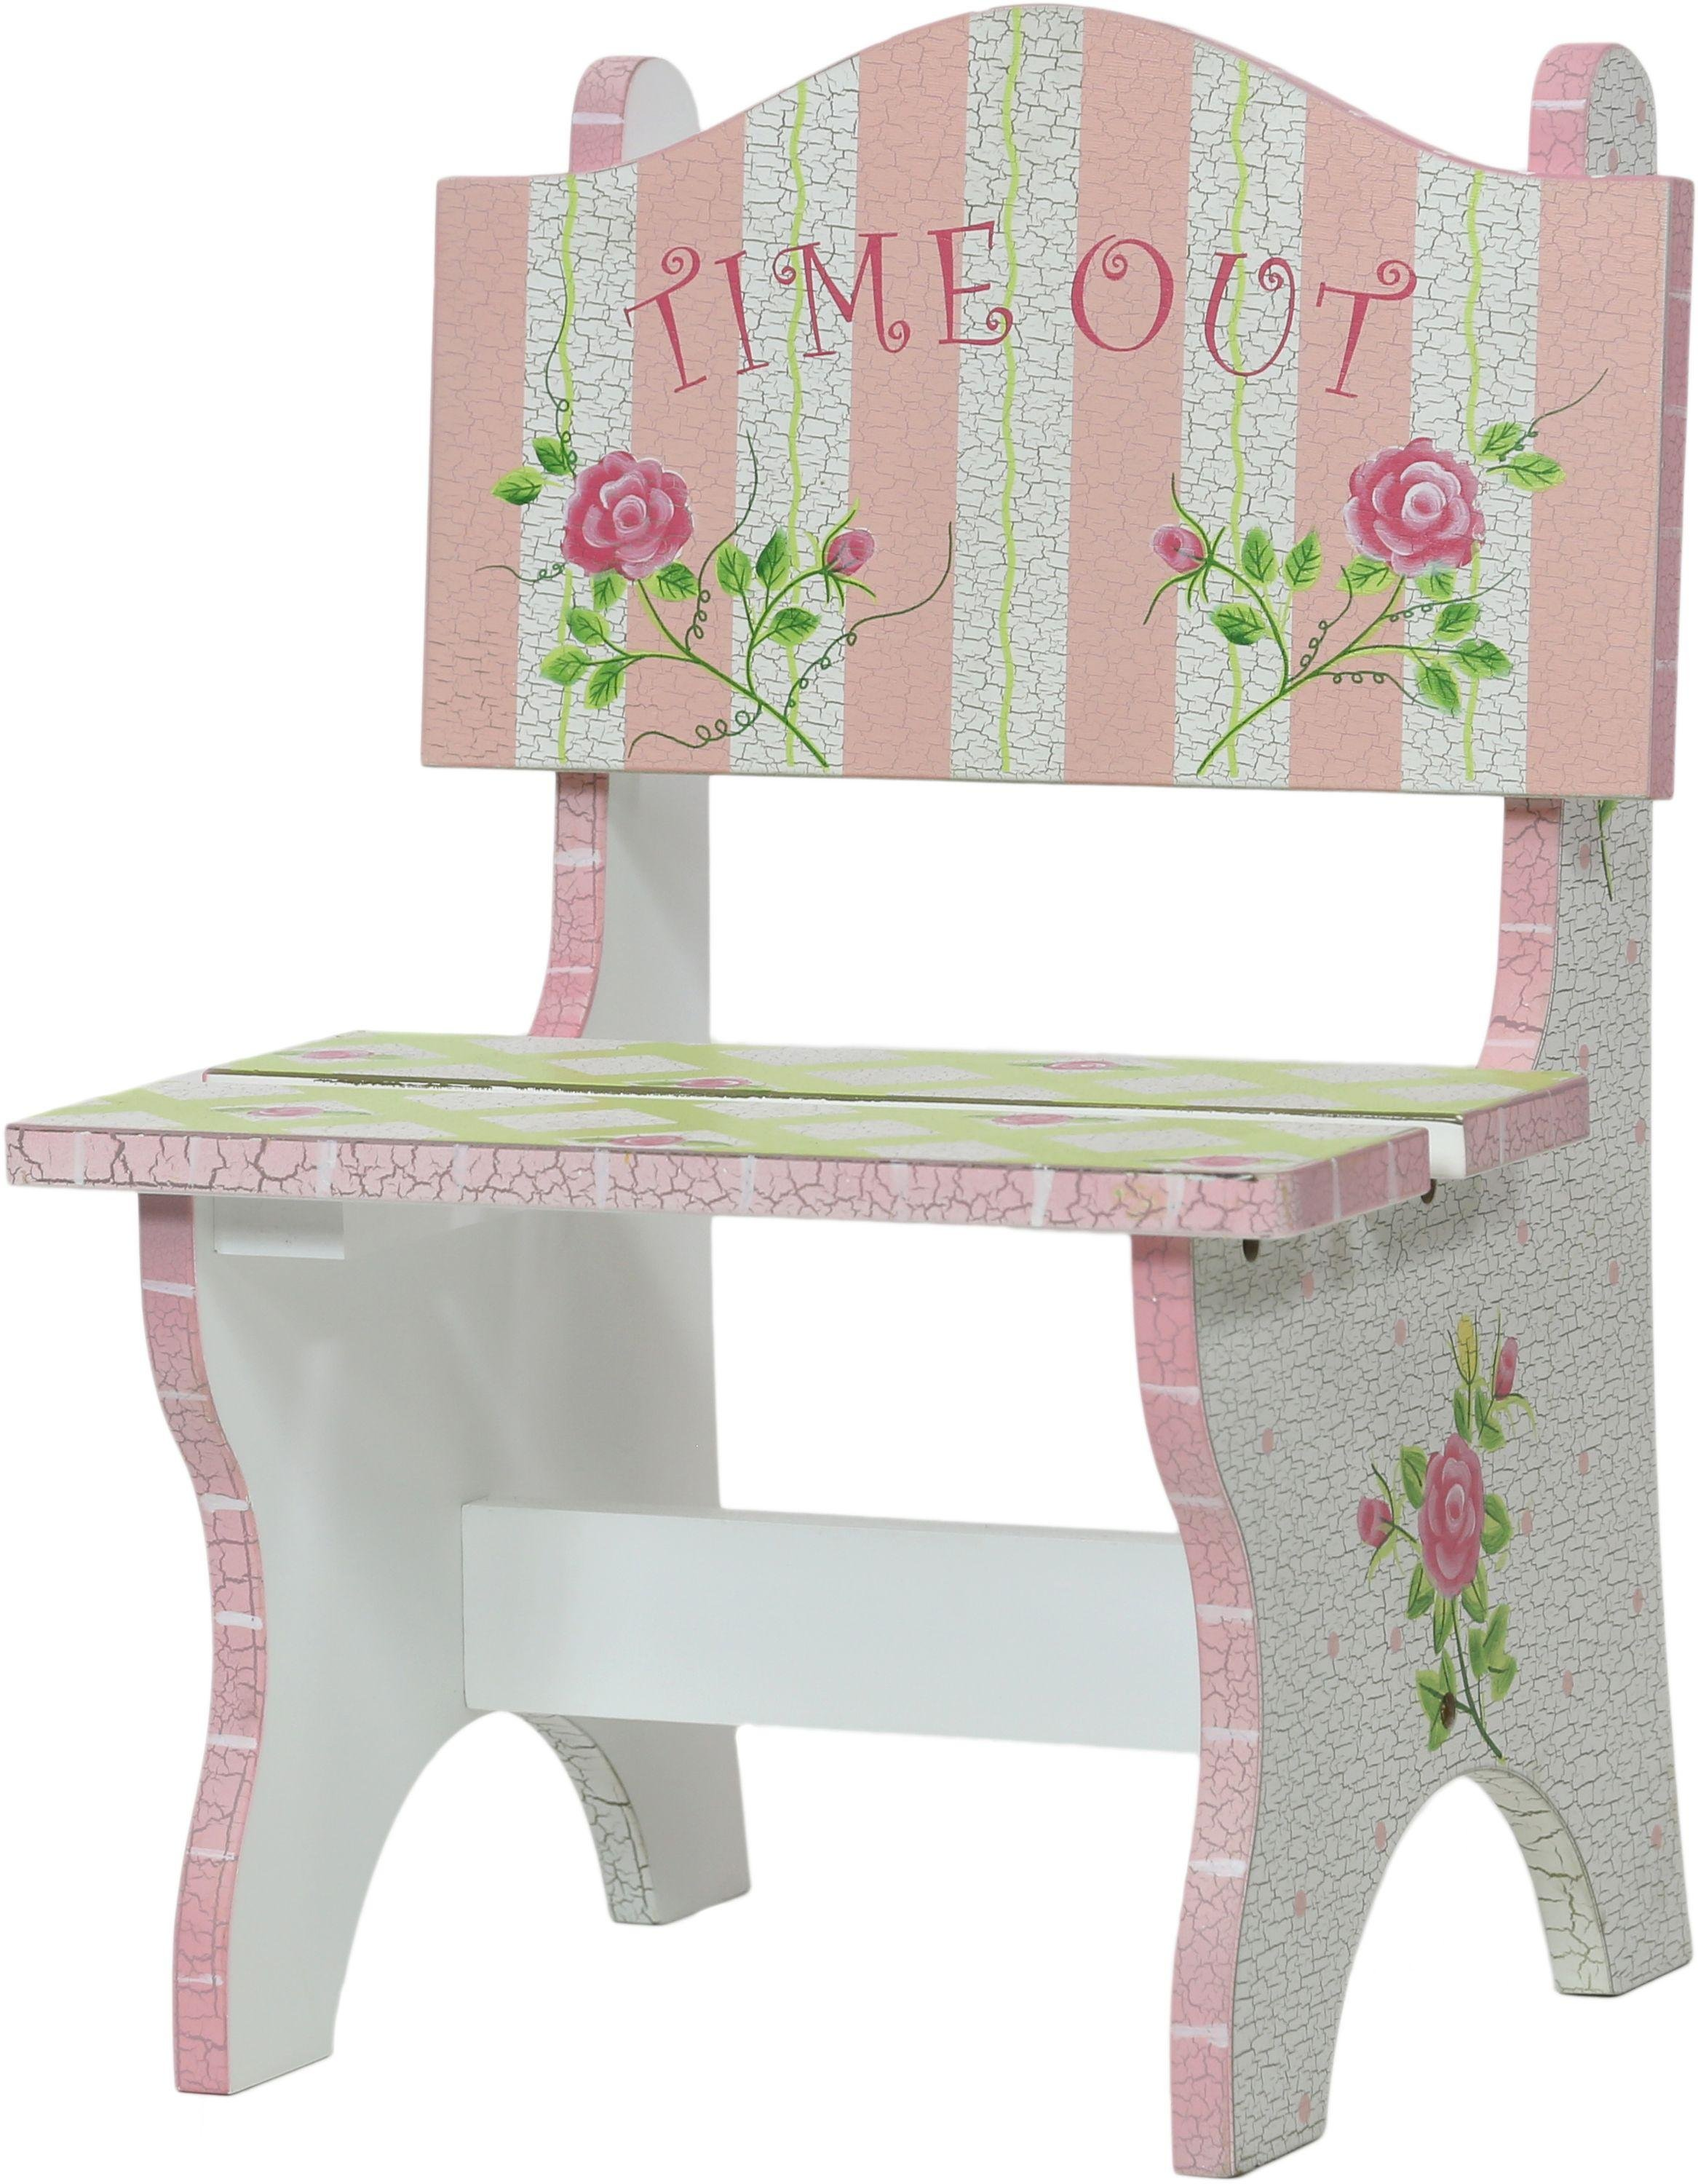 Image of Fantasy Fields Crackled Rose Time Out Chair.